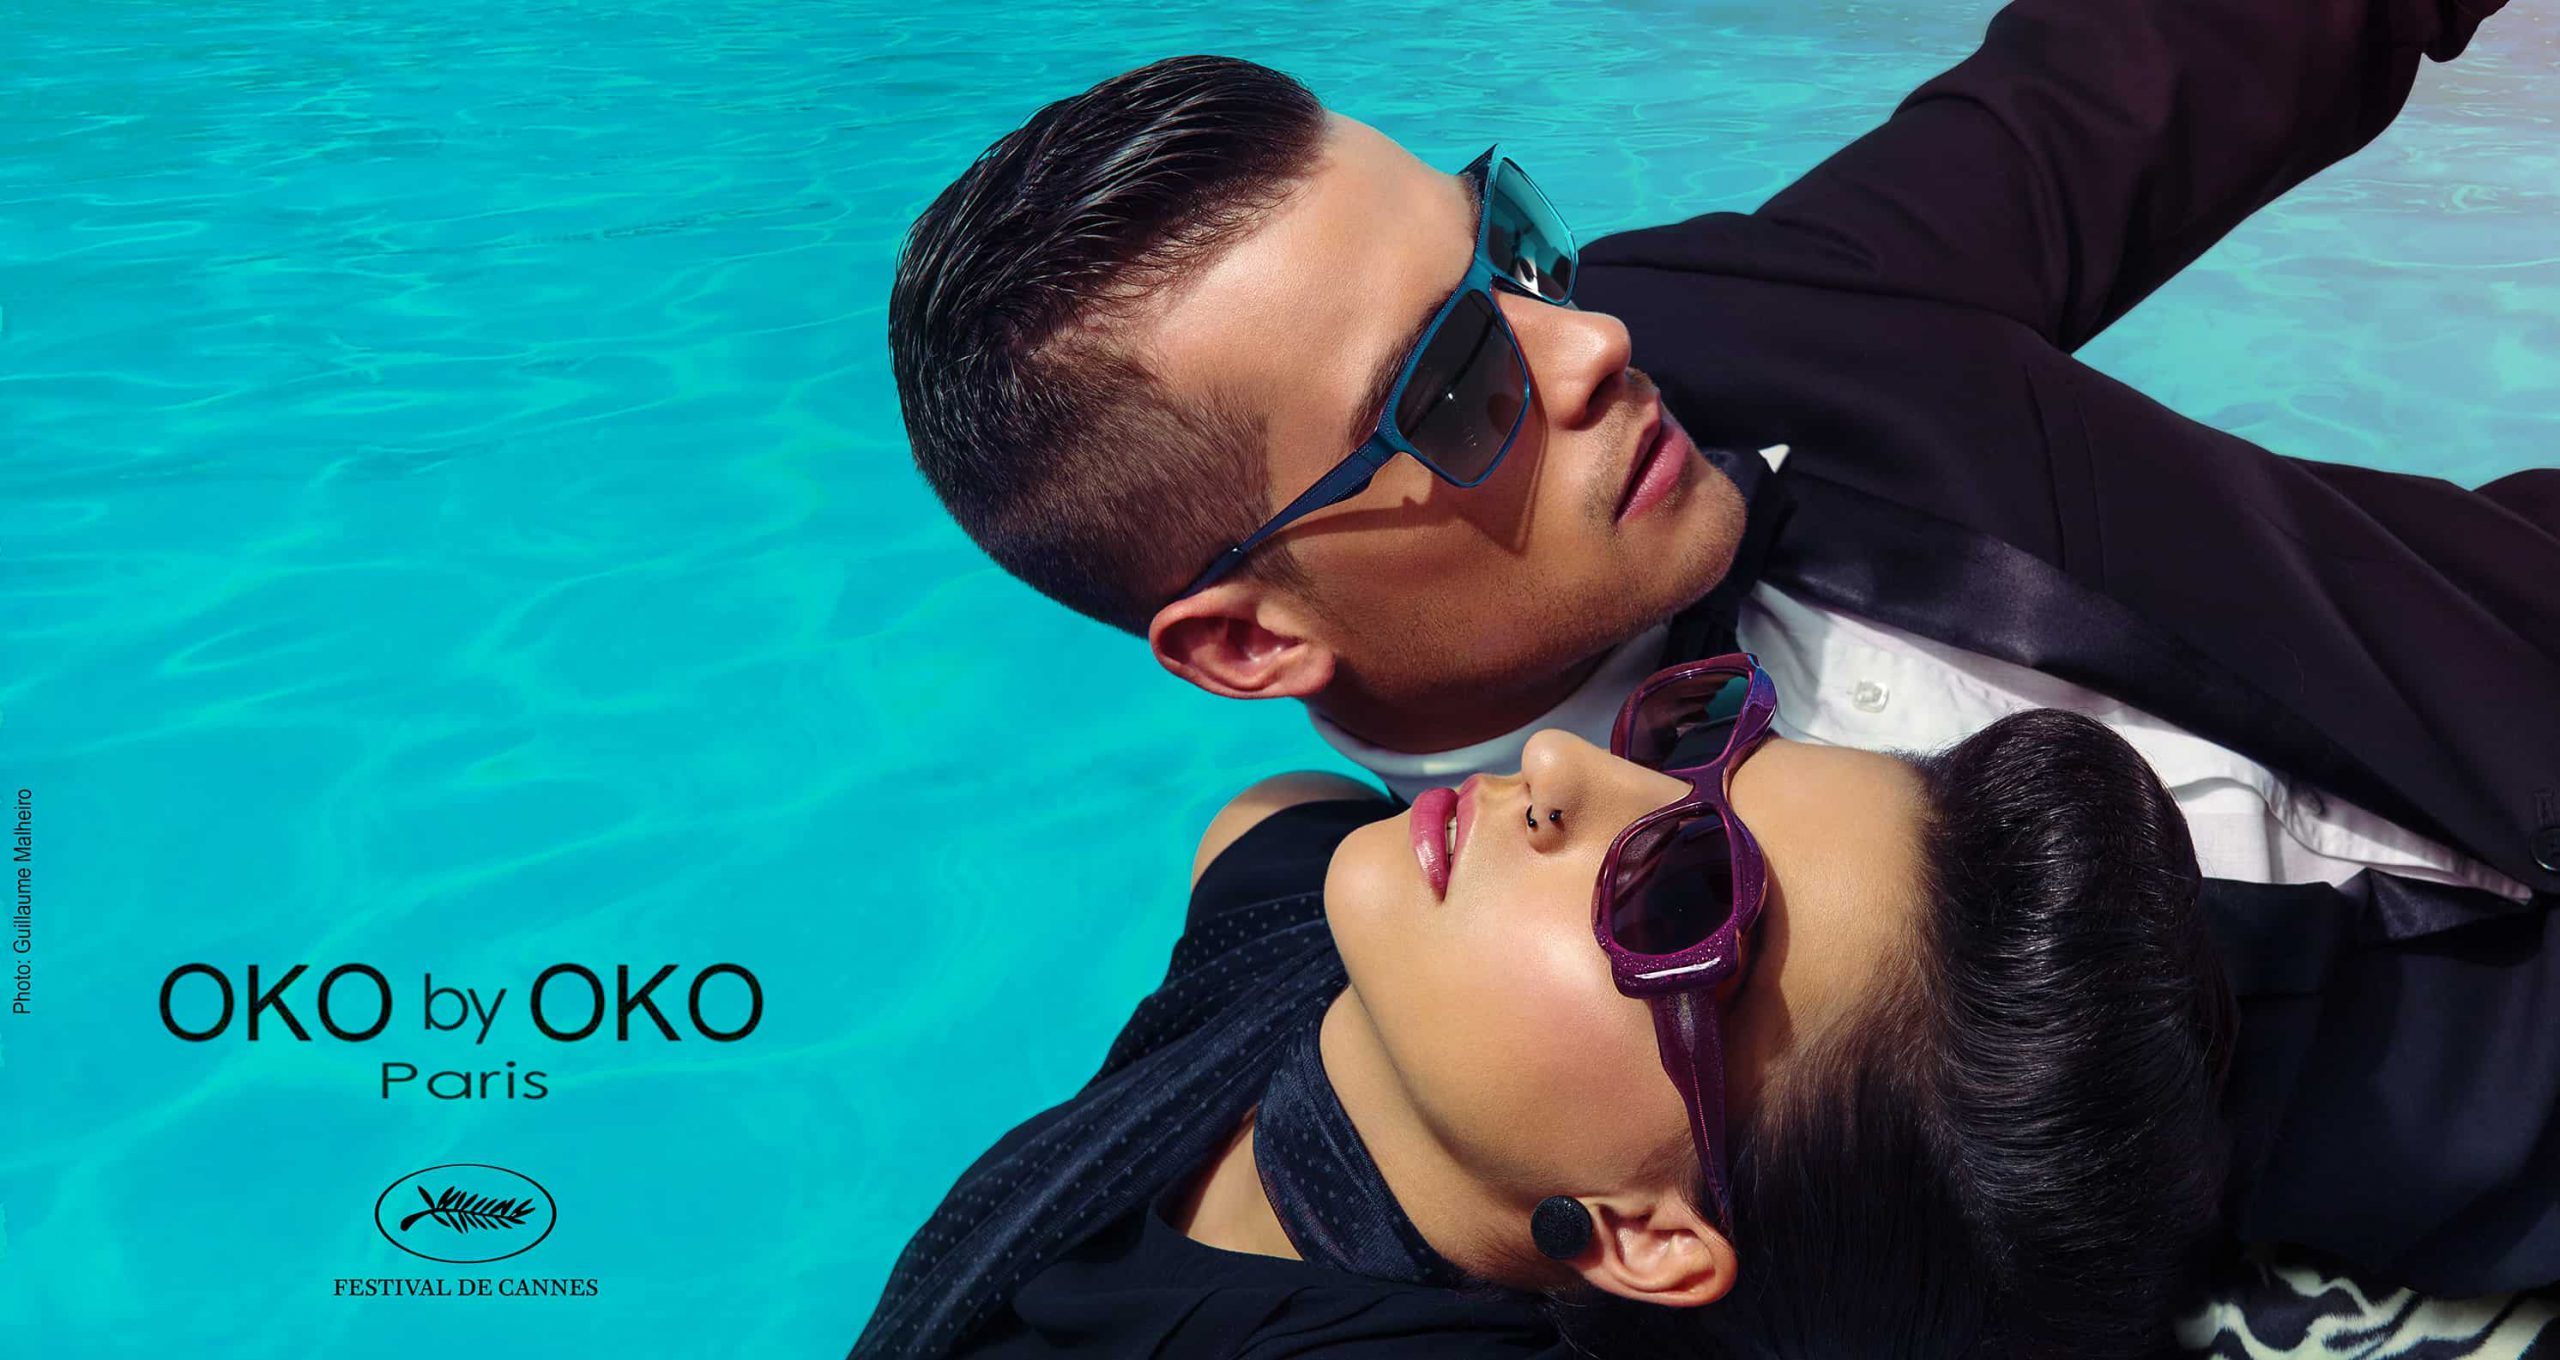 11 Oko Eyewear festival de Cannes scaled